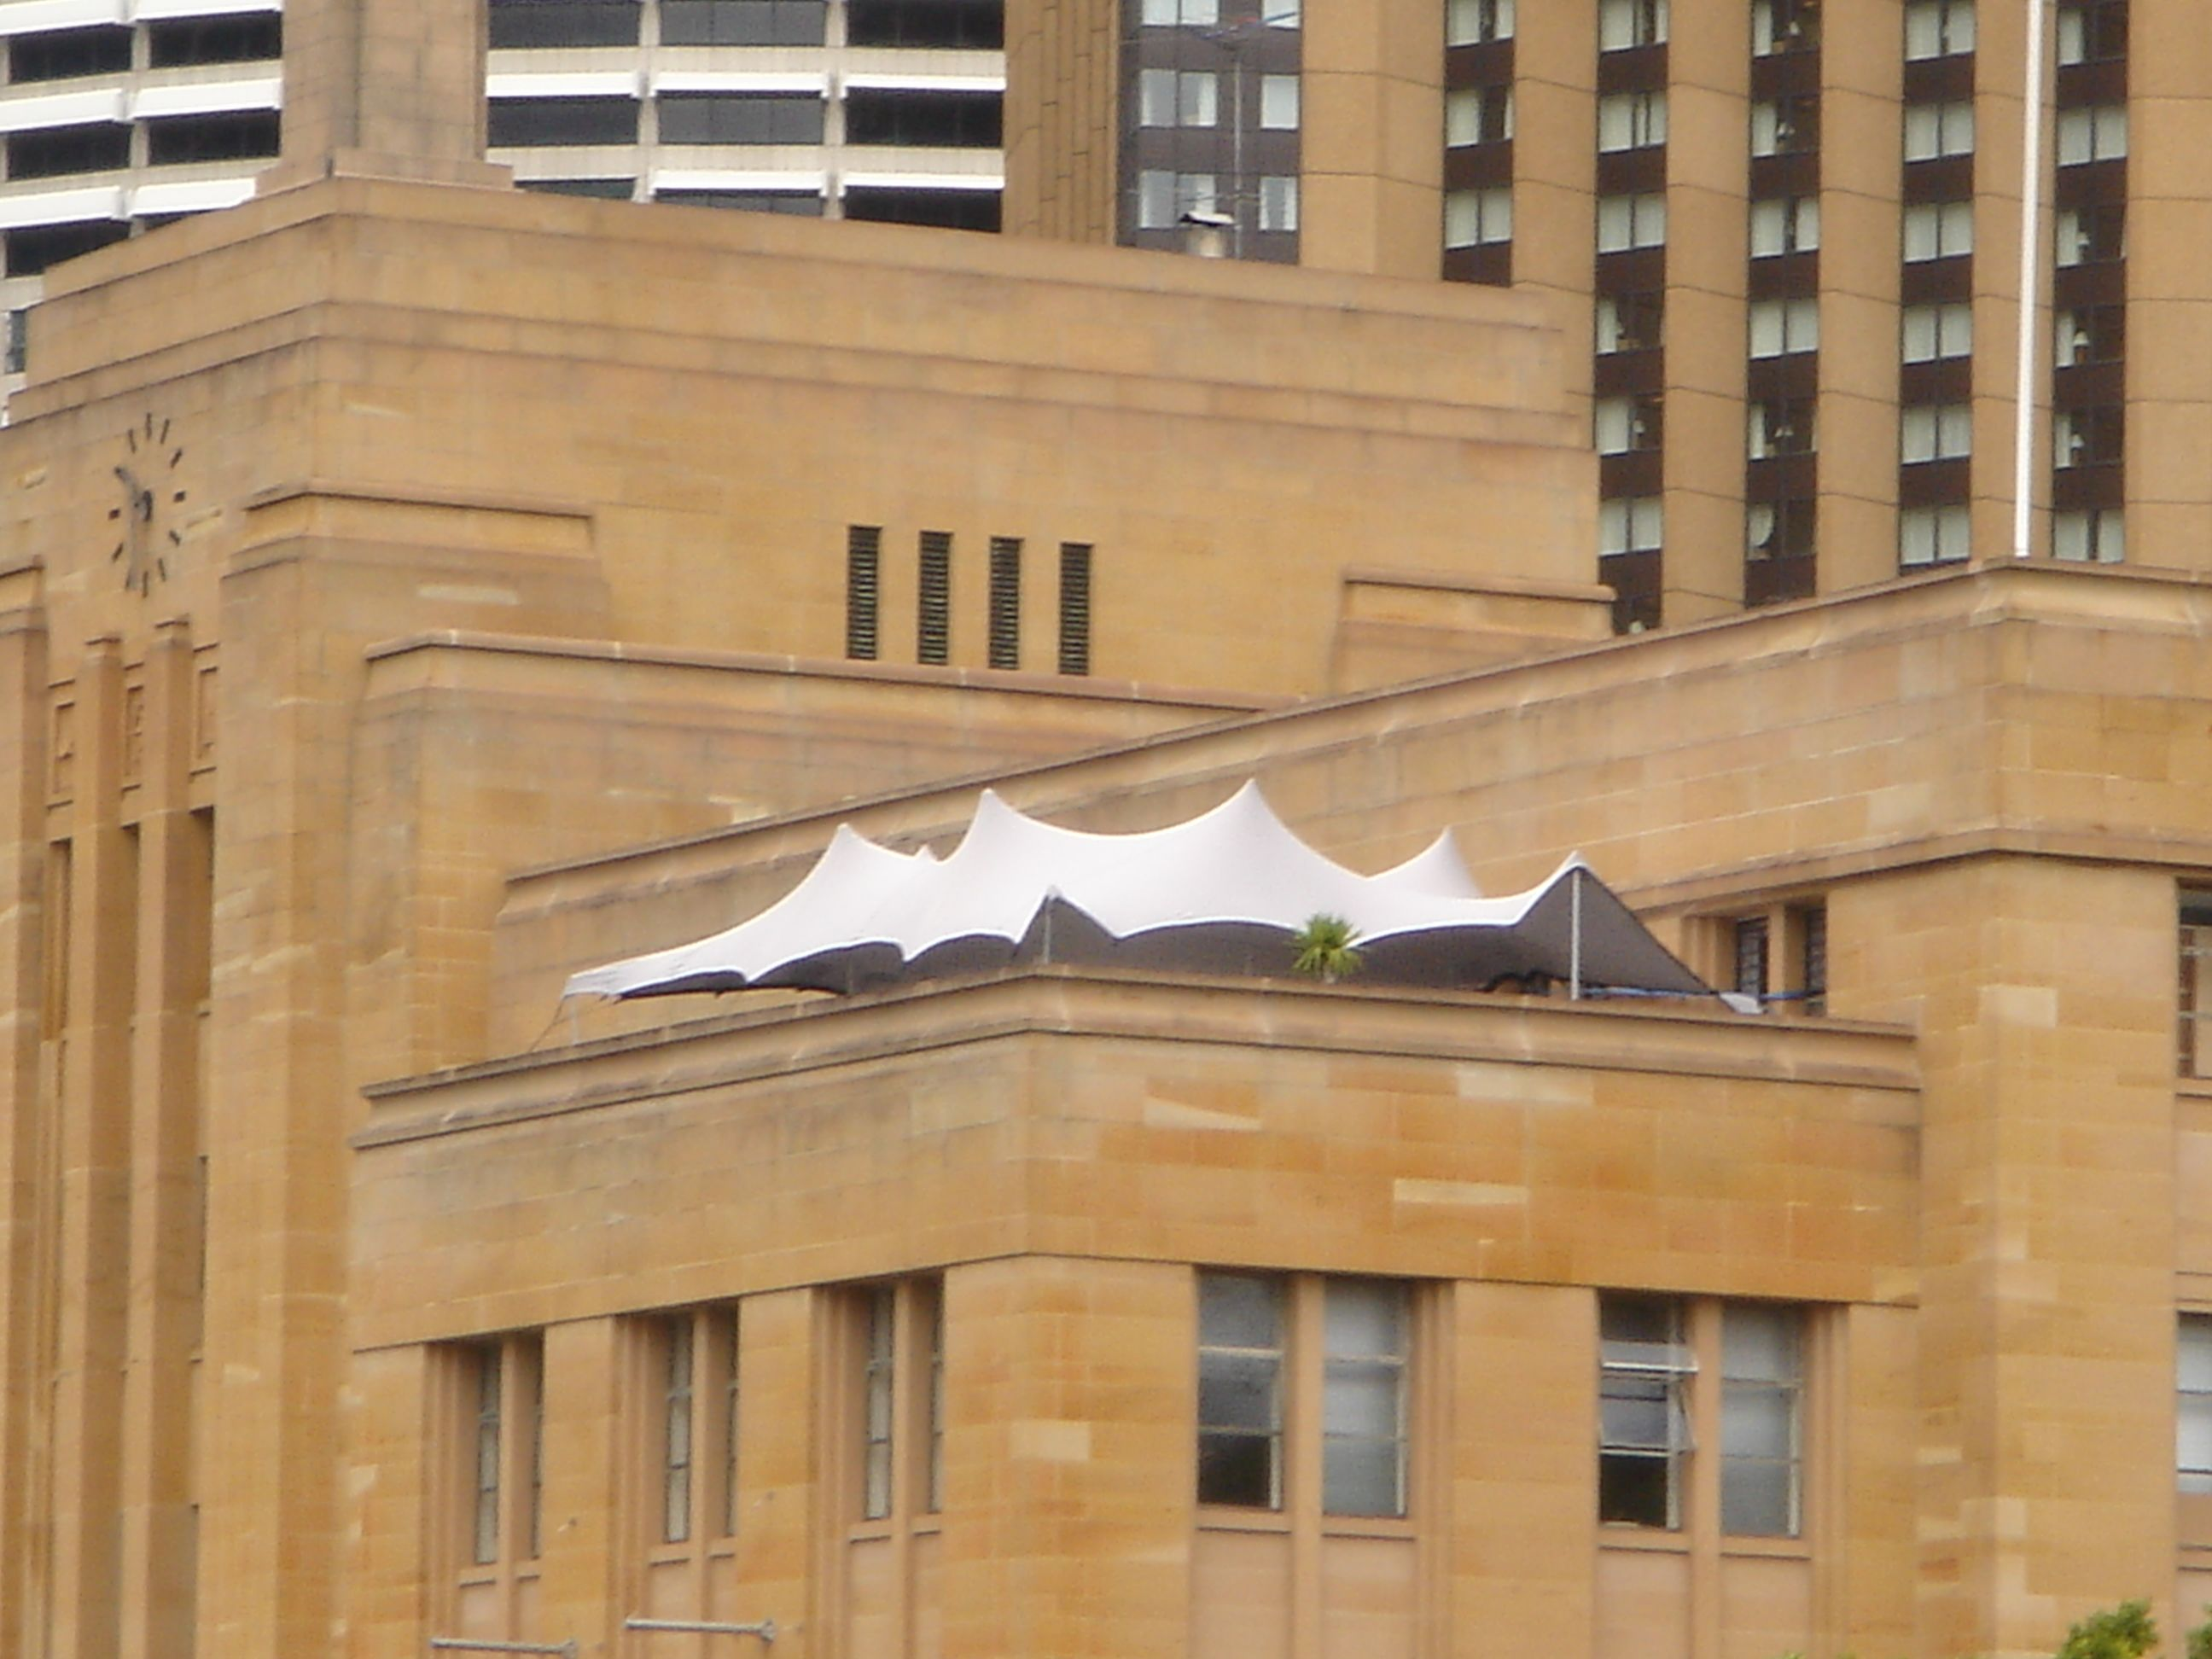 Rooftop stretch tents · Tent ClearanceTentsRooftopAustralia & Rooftop stretch tents | Creative Tent Installation | Pinterest | Tents